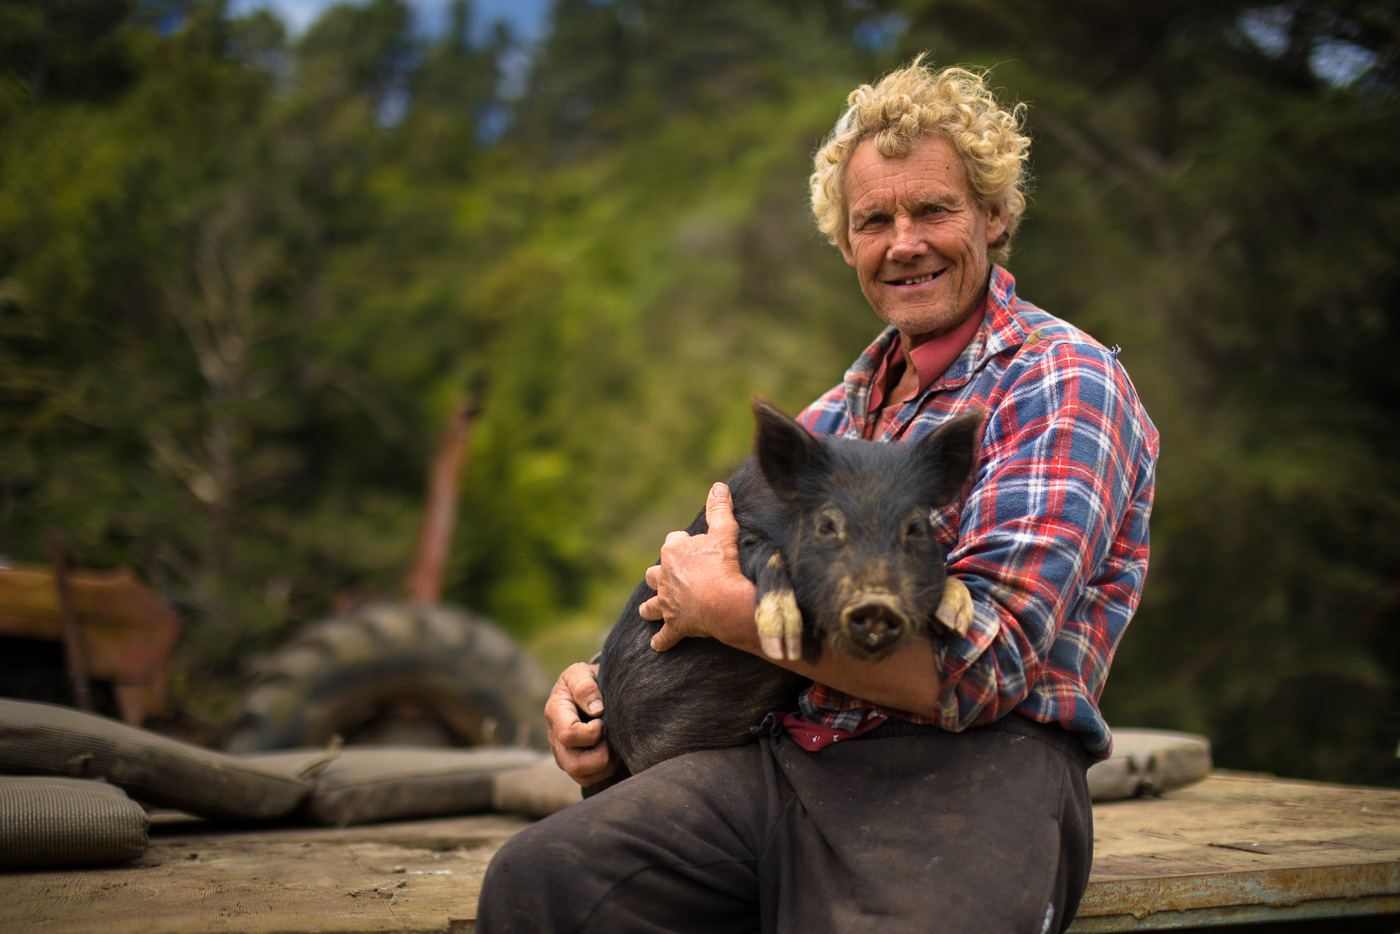 Everybody in New Zealand is friendly, but this guy takes the cake. He has over 40 pet pigs, and just hangs outside all day inviting tourists to play with them, all for fun